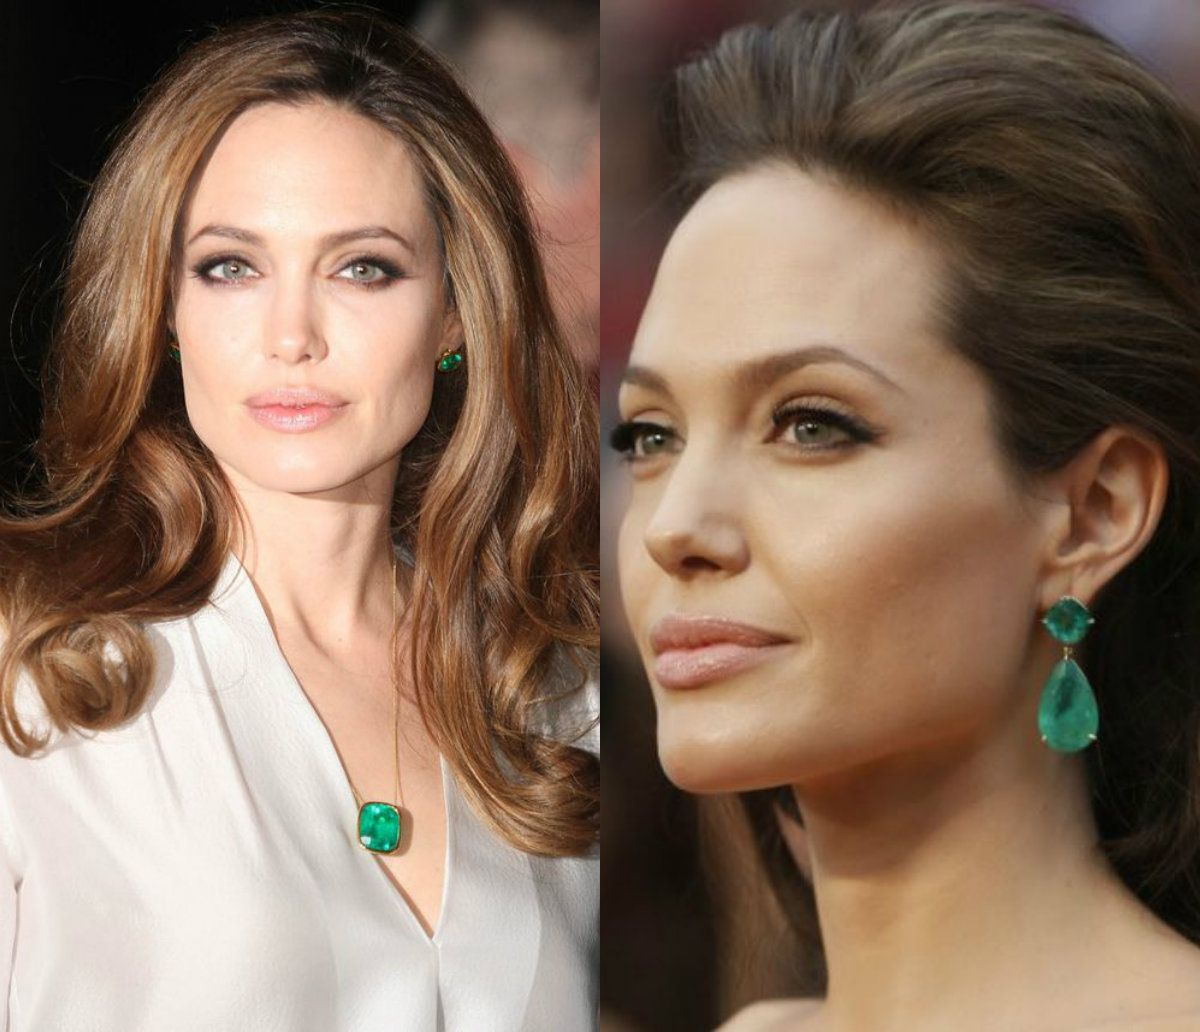 Angelina Jolie Green Emerald Earrings All About Collections